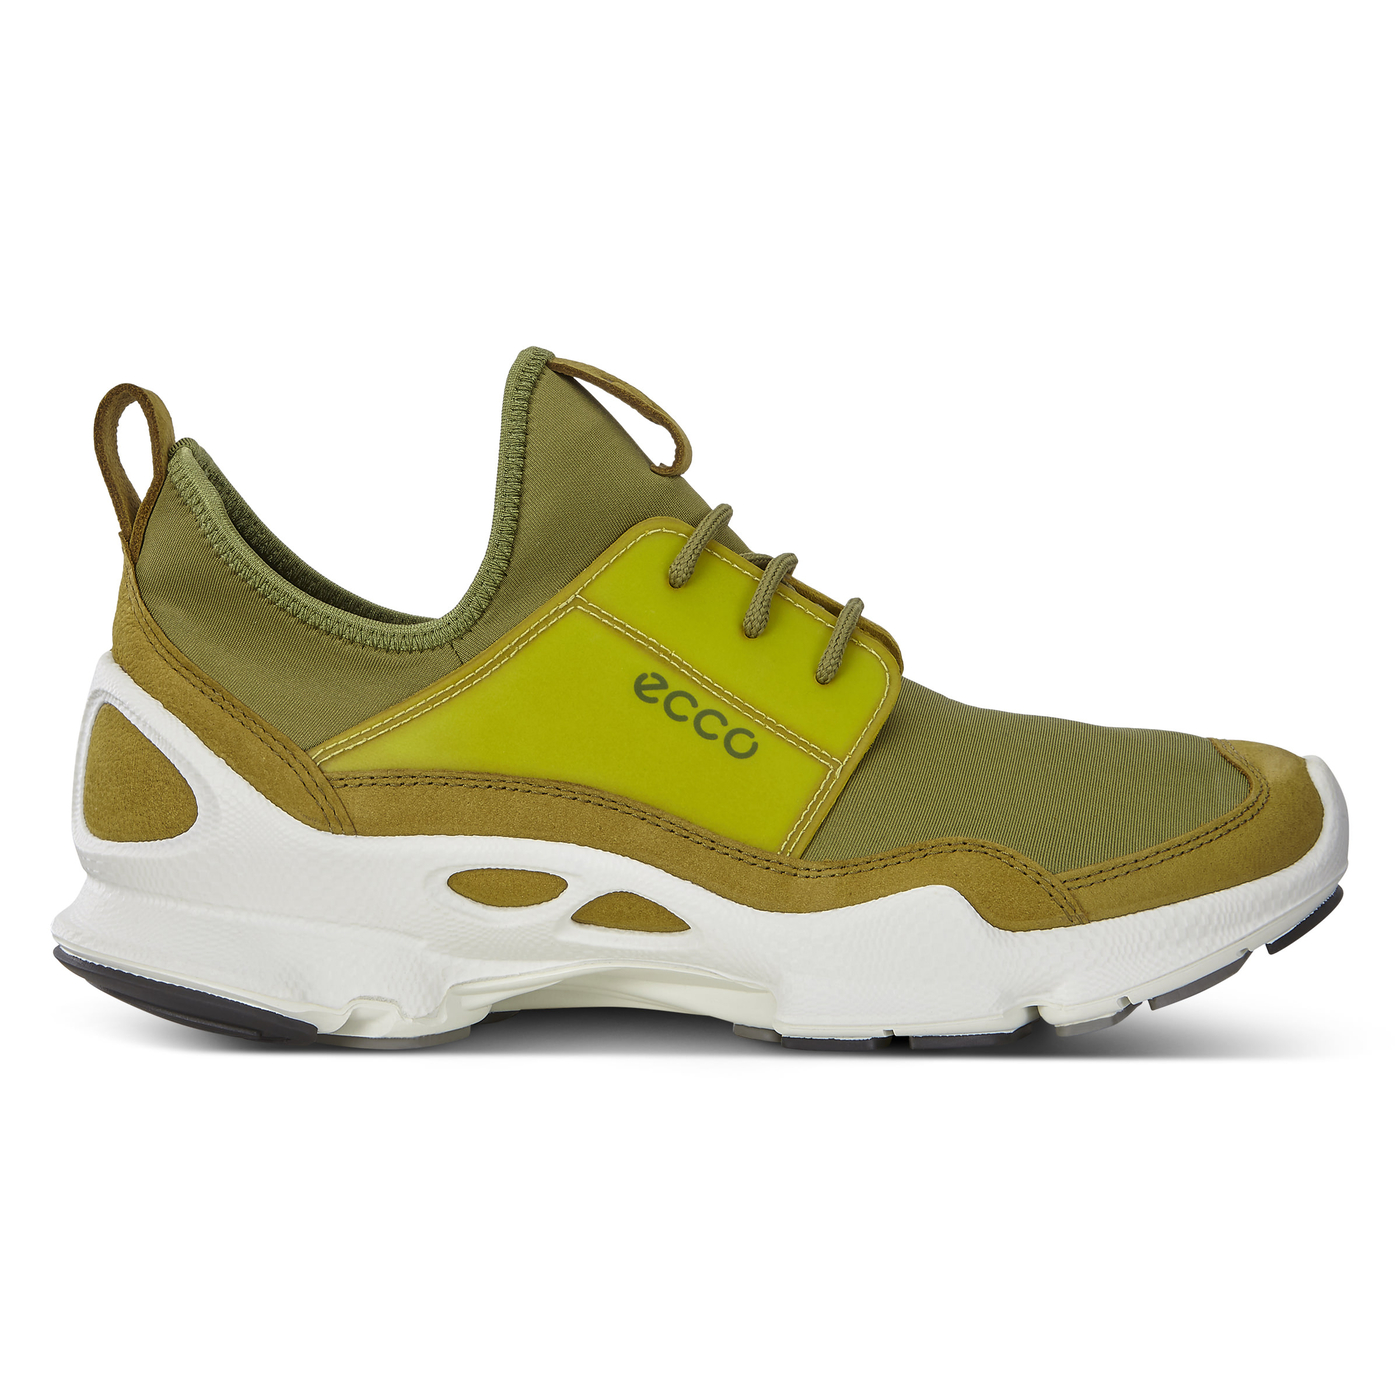 ECCO BIOM C - MEN'S Shoe